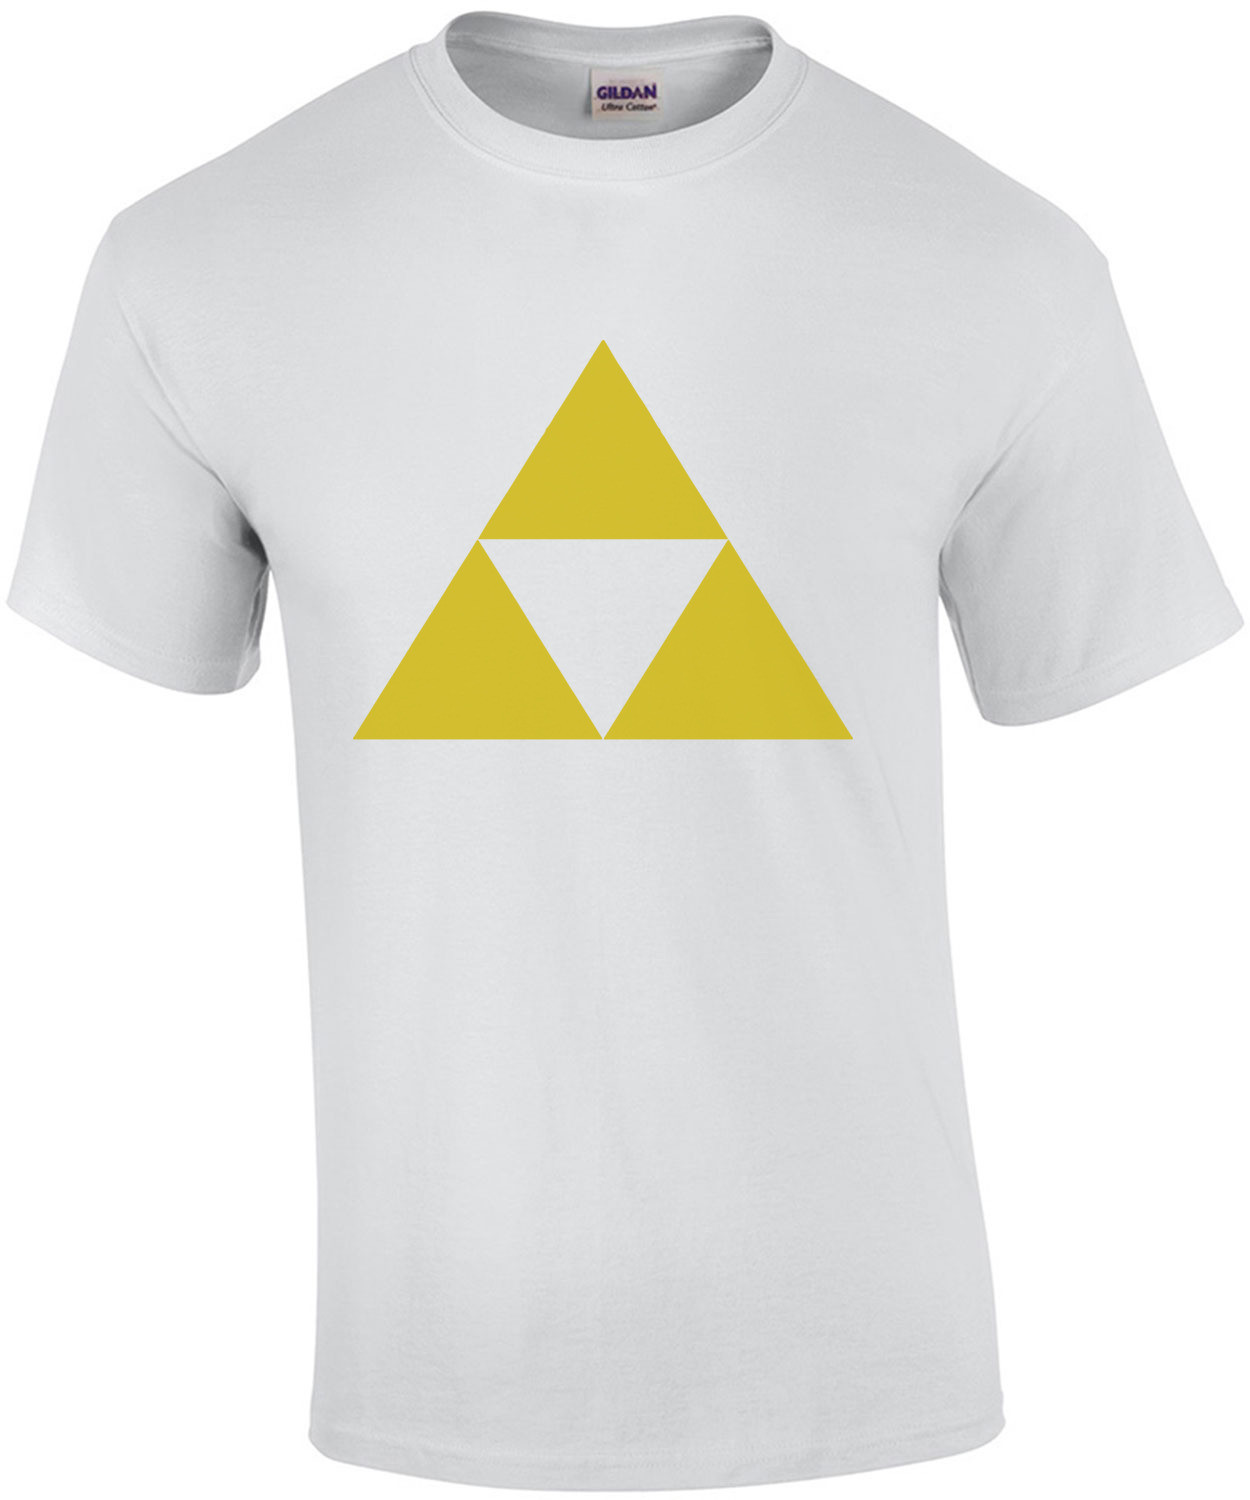 Triforce - legend of zelda t-shirt